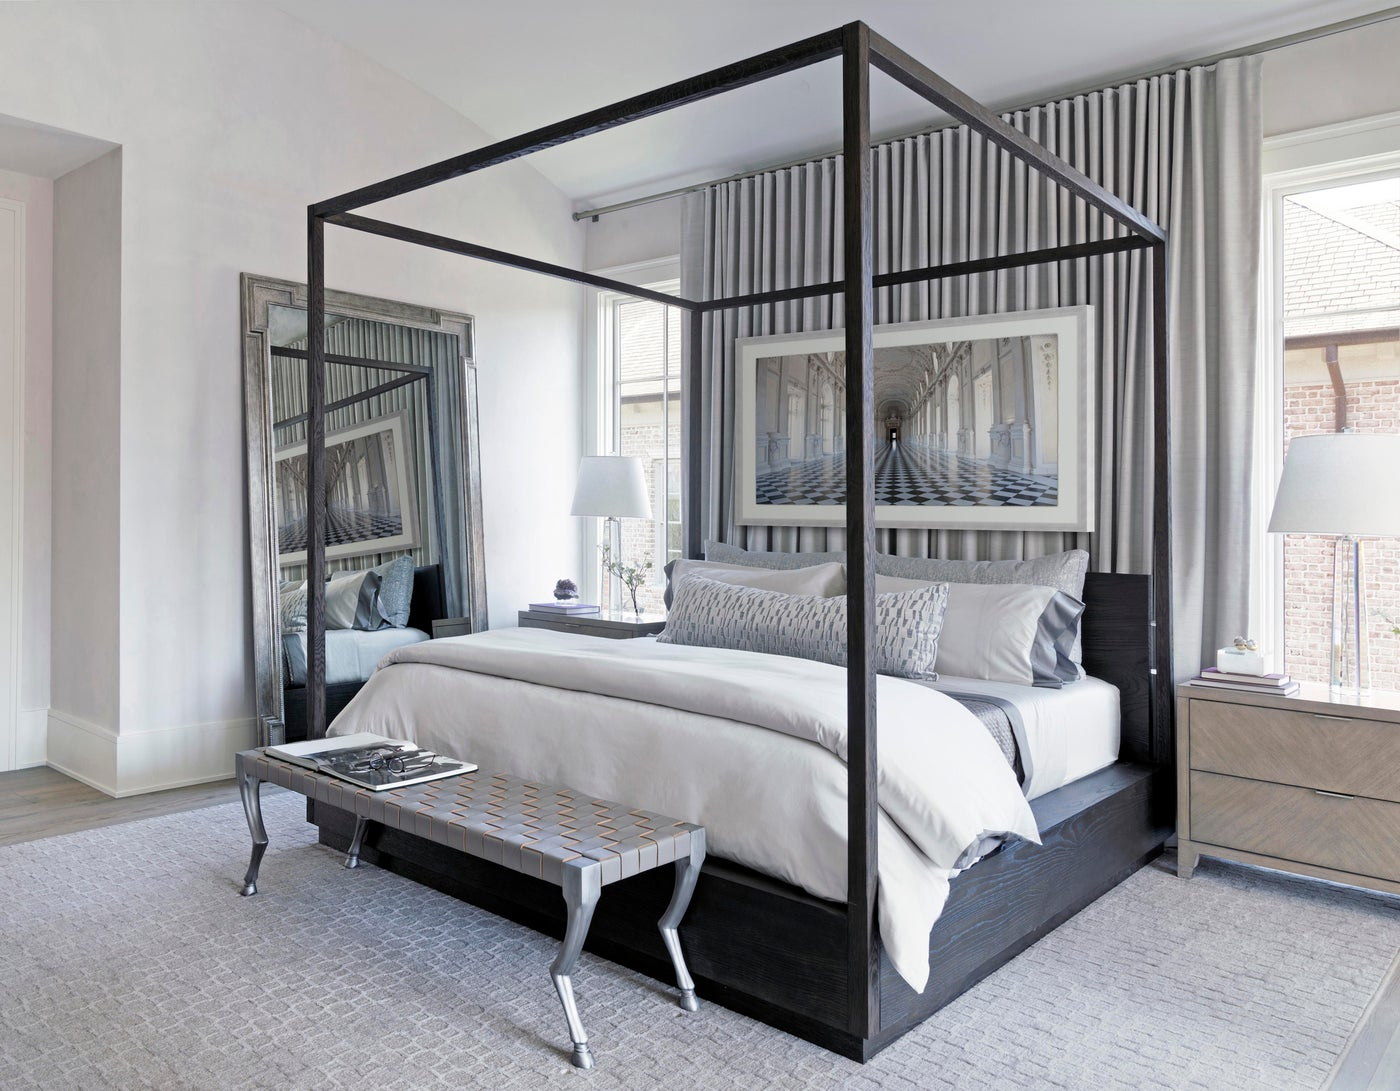 Cozy Master Bedroom with Silver Accents